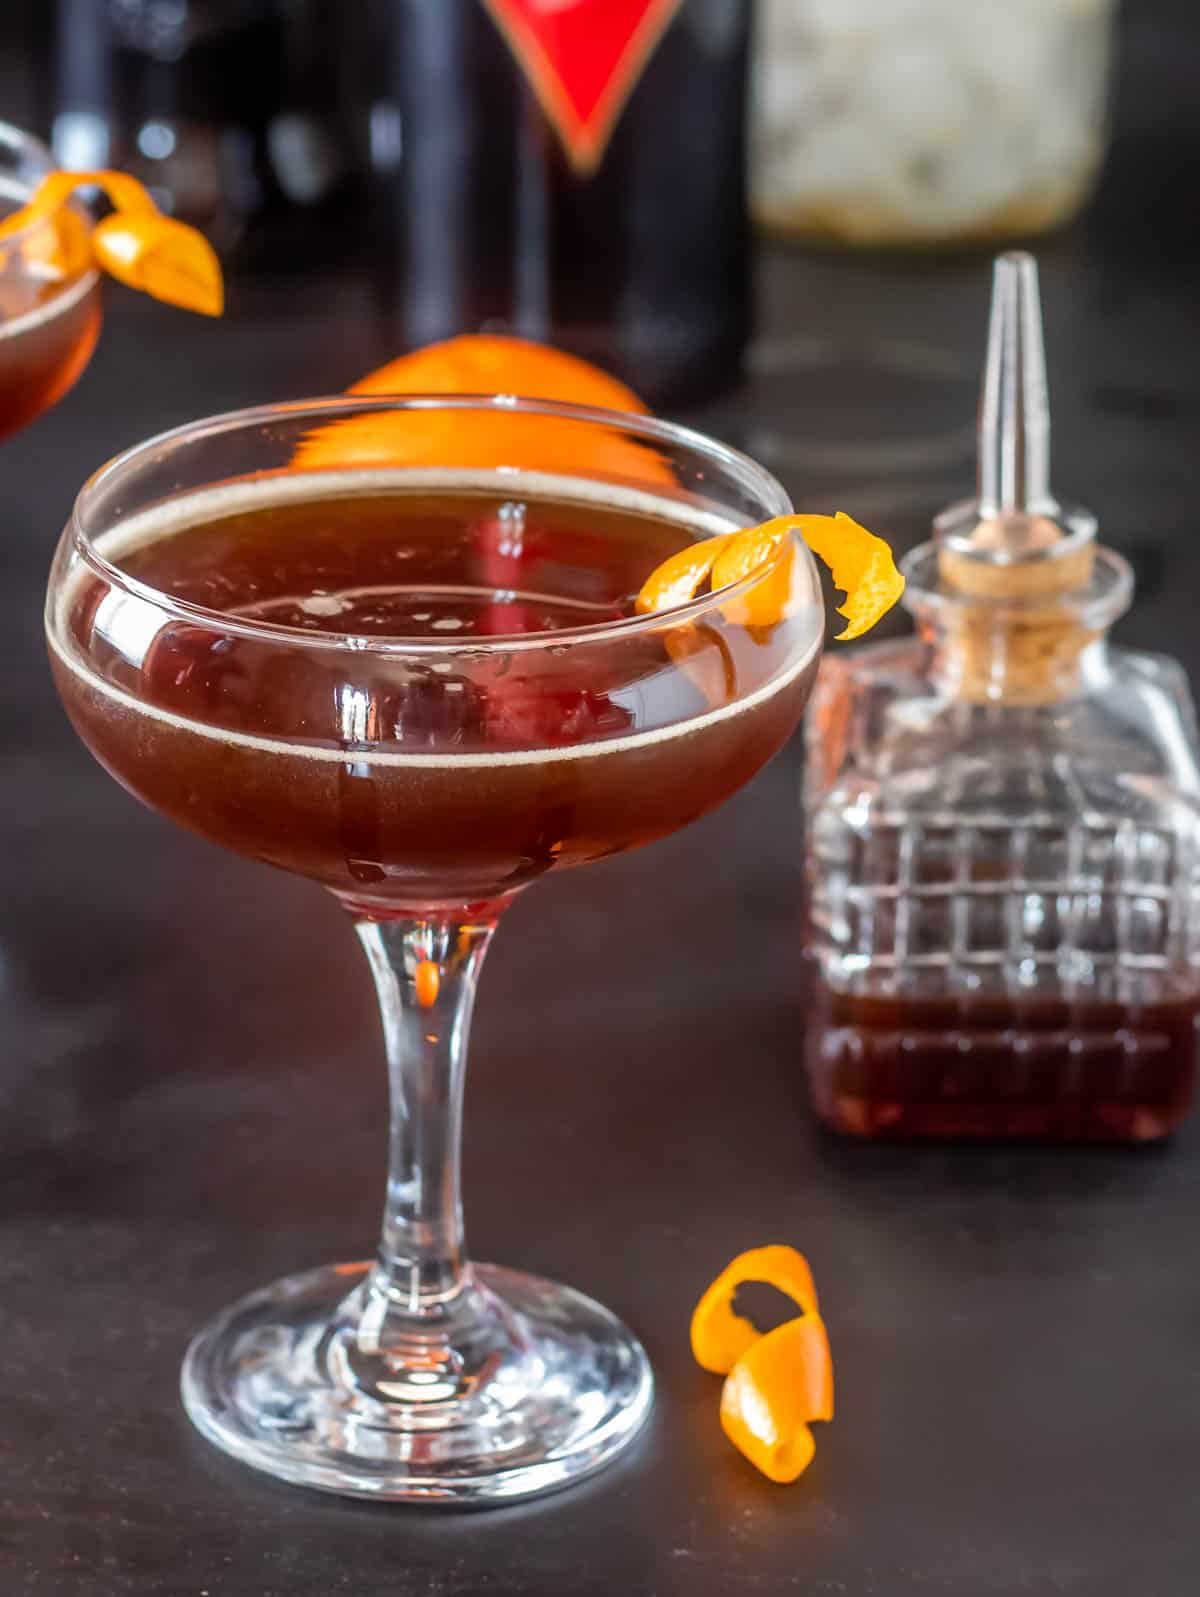 A single coupe glass with a red vermouth and Cynar cocktail with an orange twist.